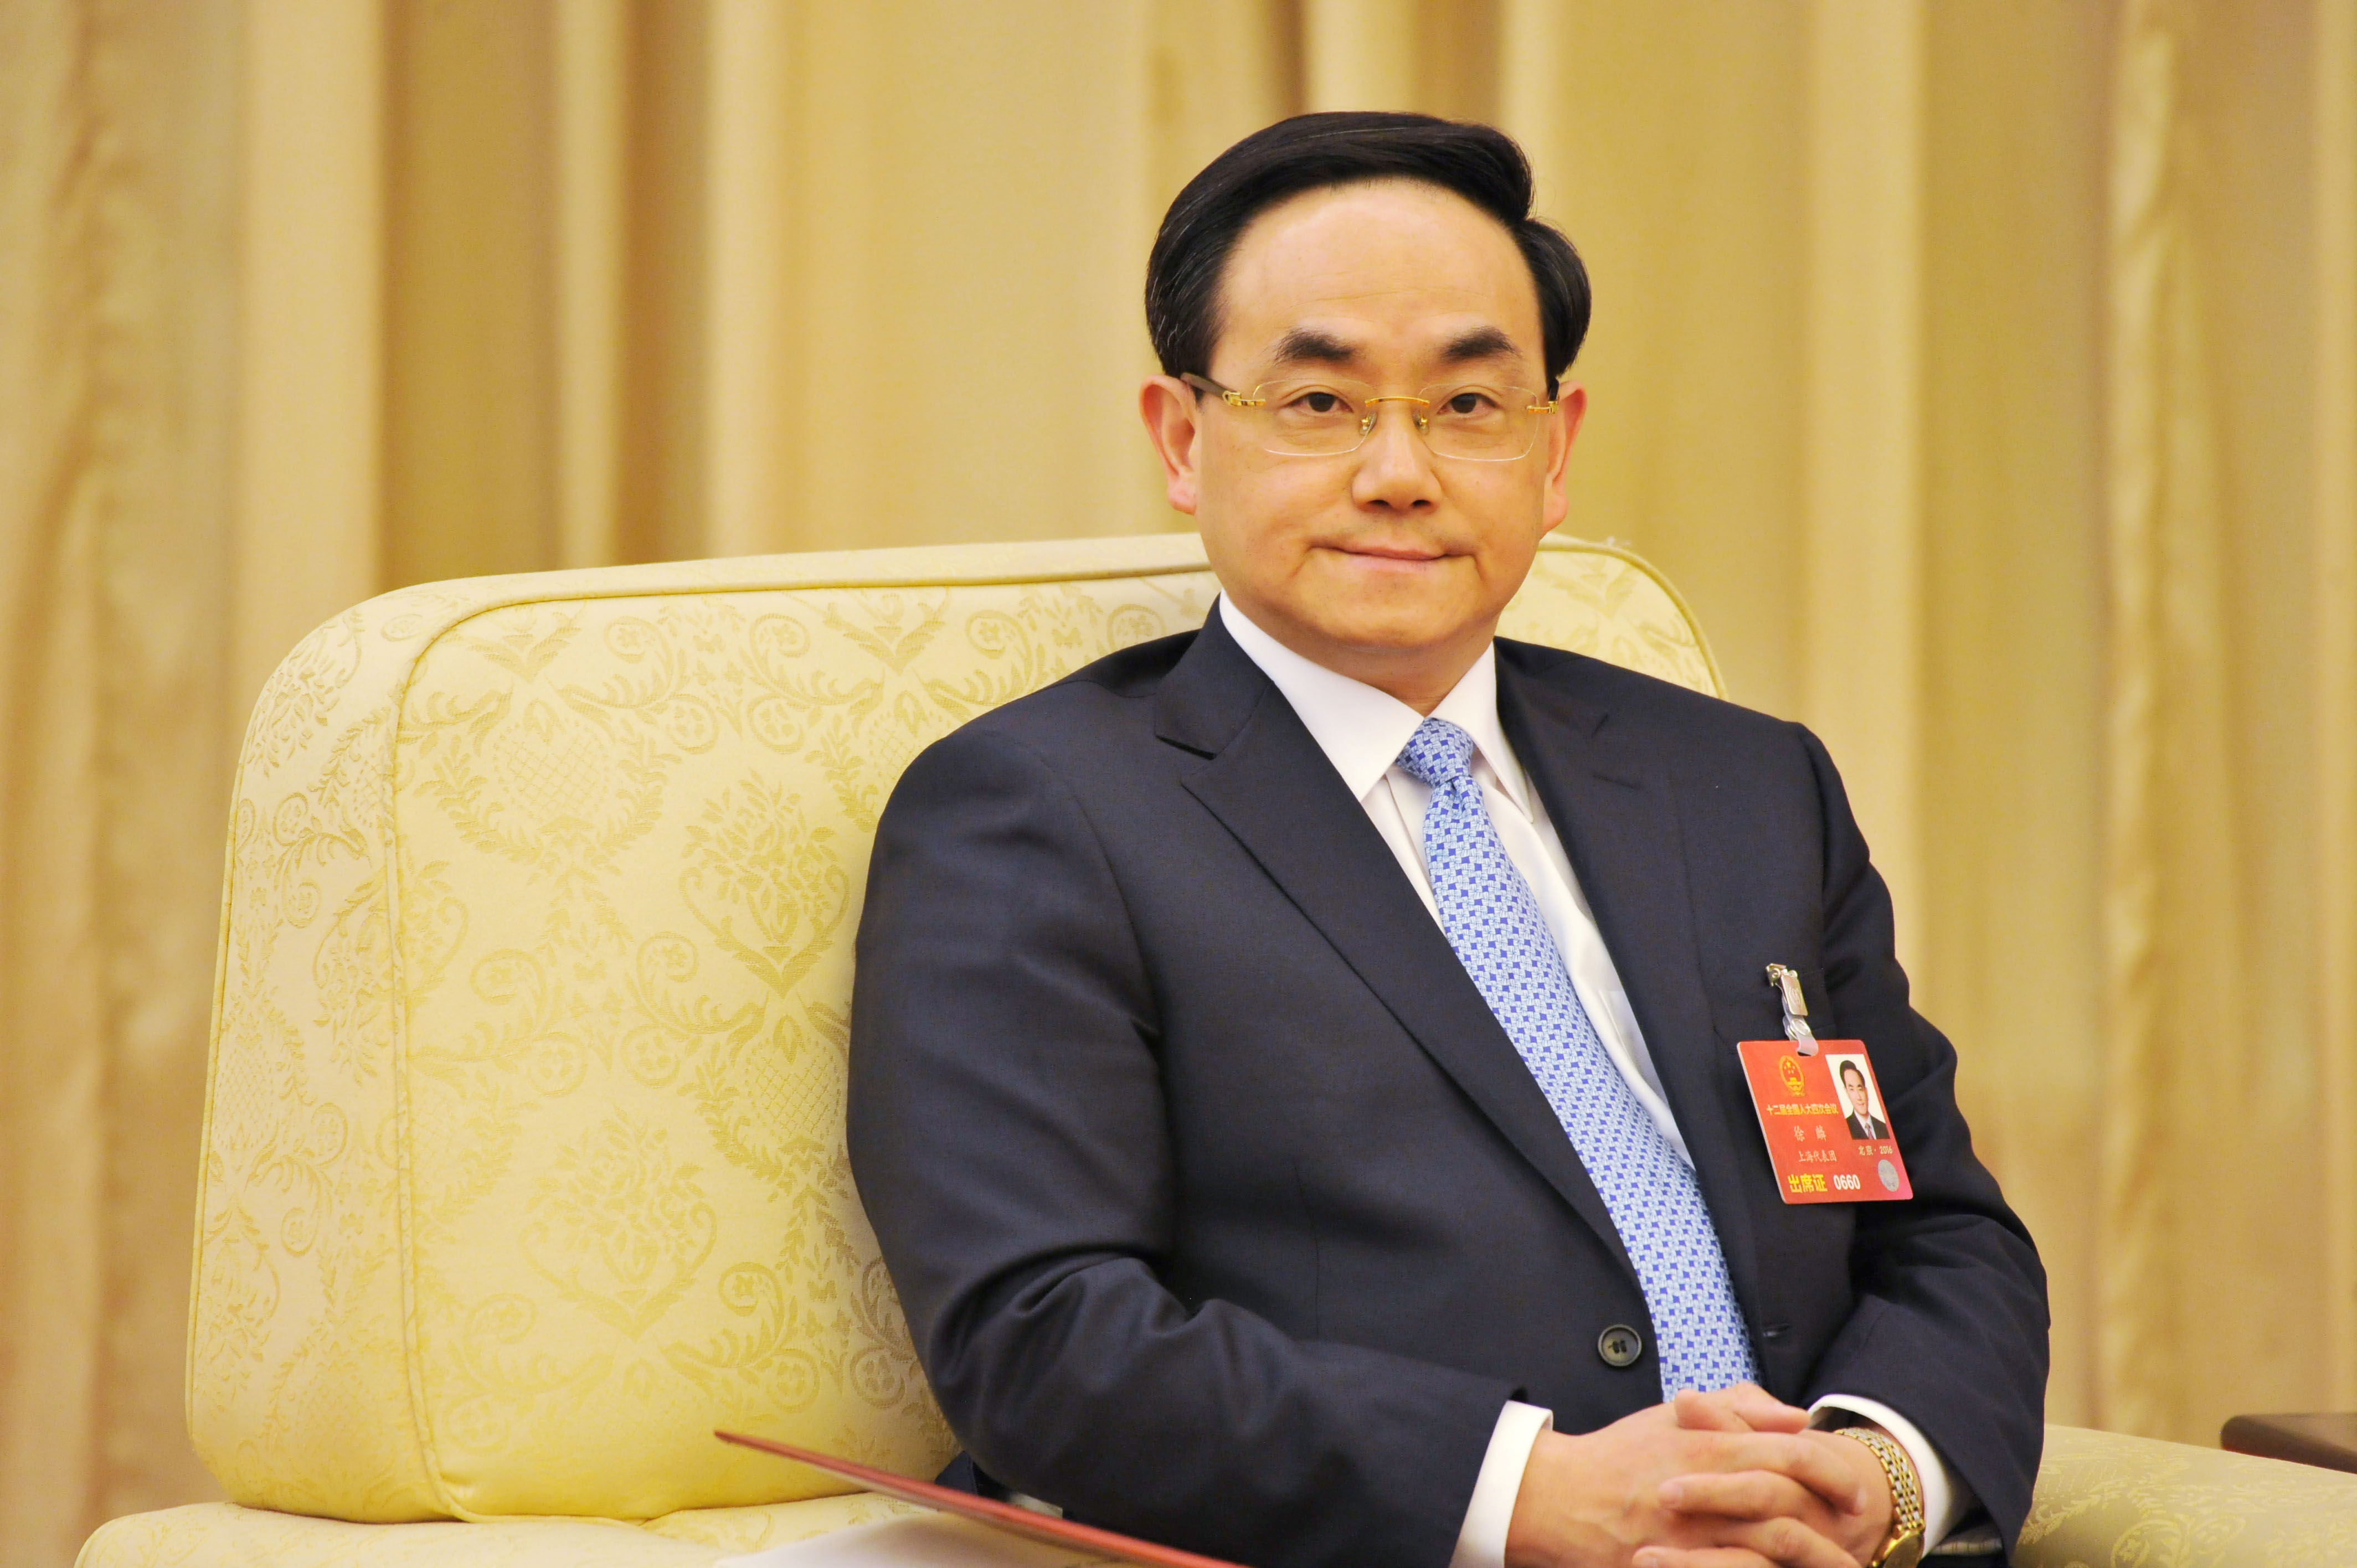 Xu Lin, deputy director of China's internet regulator, attends a Shanghai delegation group discussion at the National People's Congress (NPC) in Beijing, China, March 6, 2016.